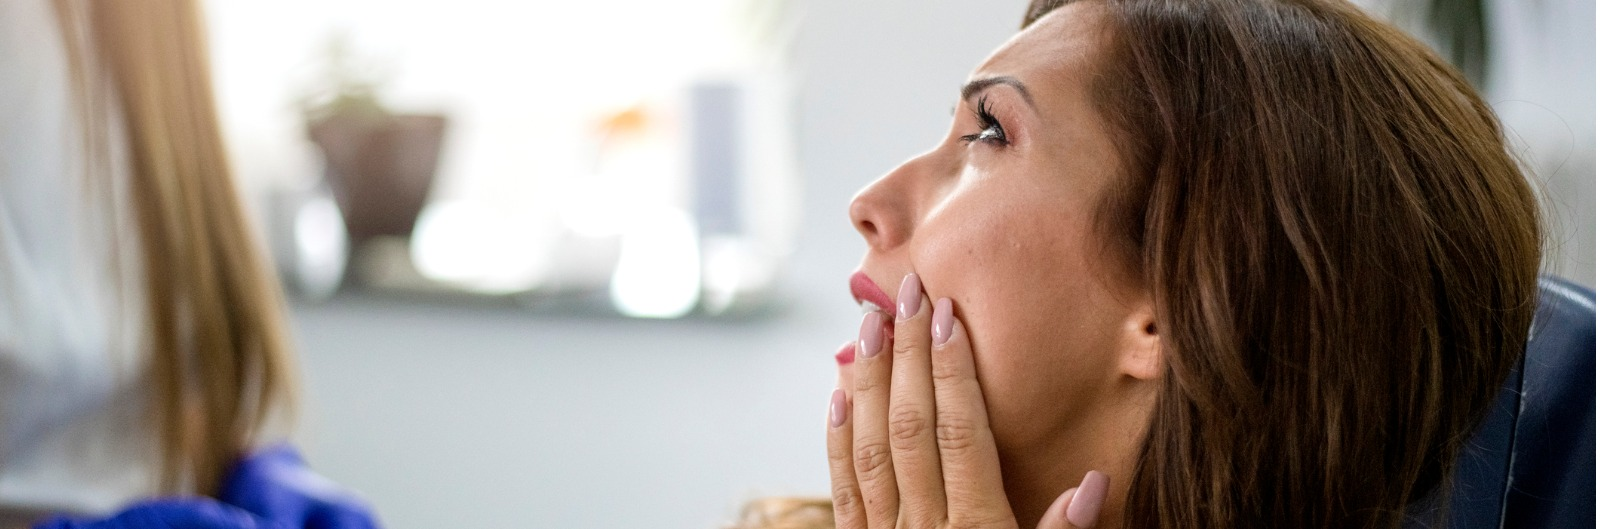 young-woman-with-toothache-picture-1600x529.jpg